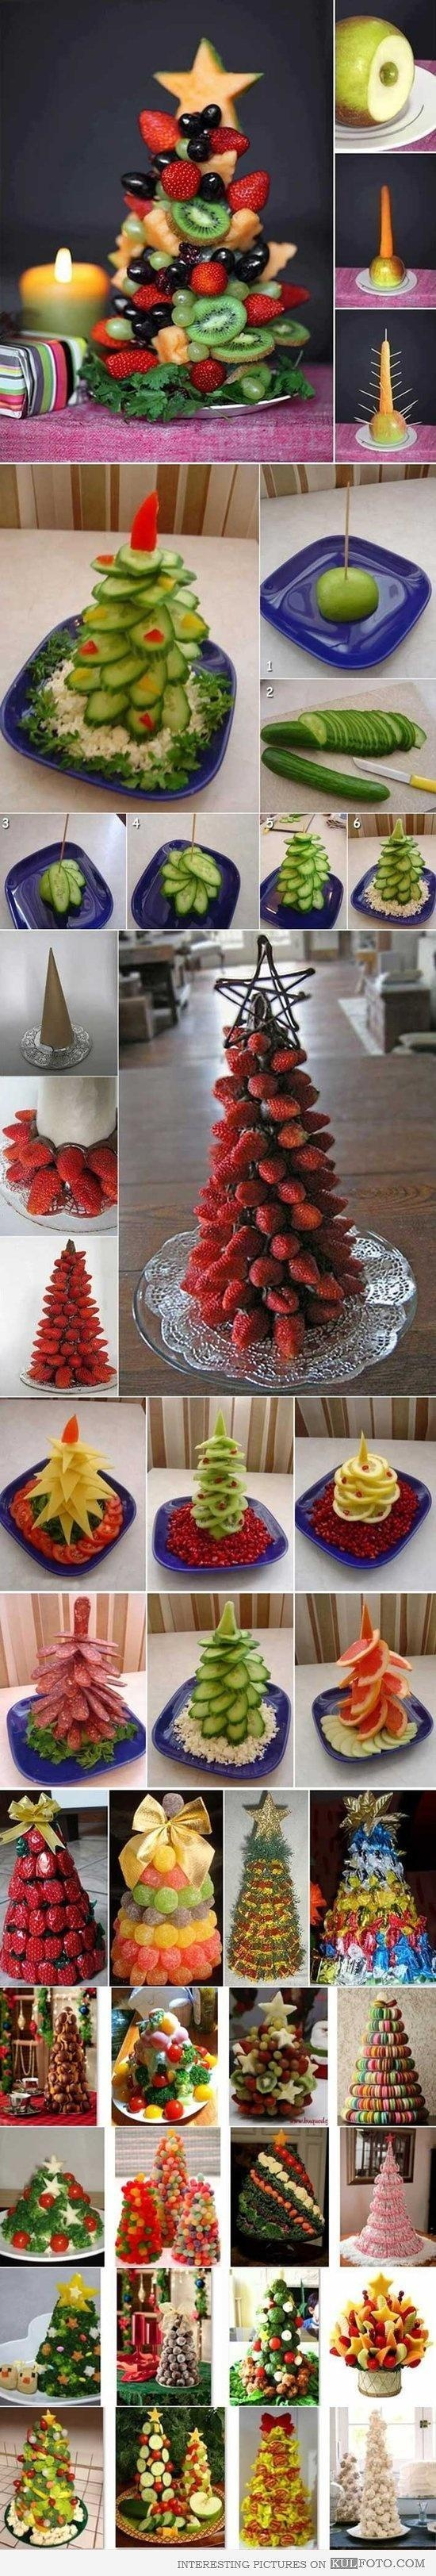 Fruit tree for party